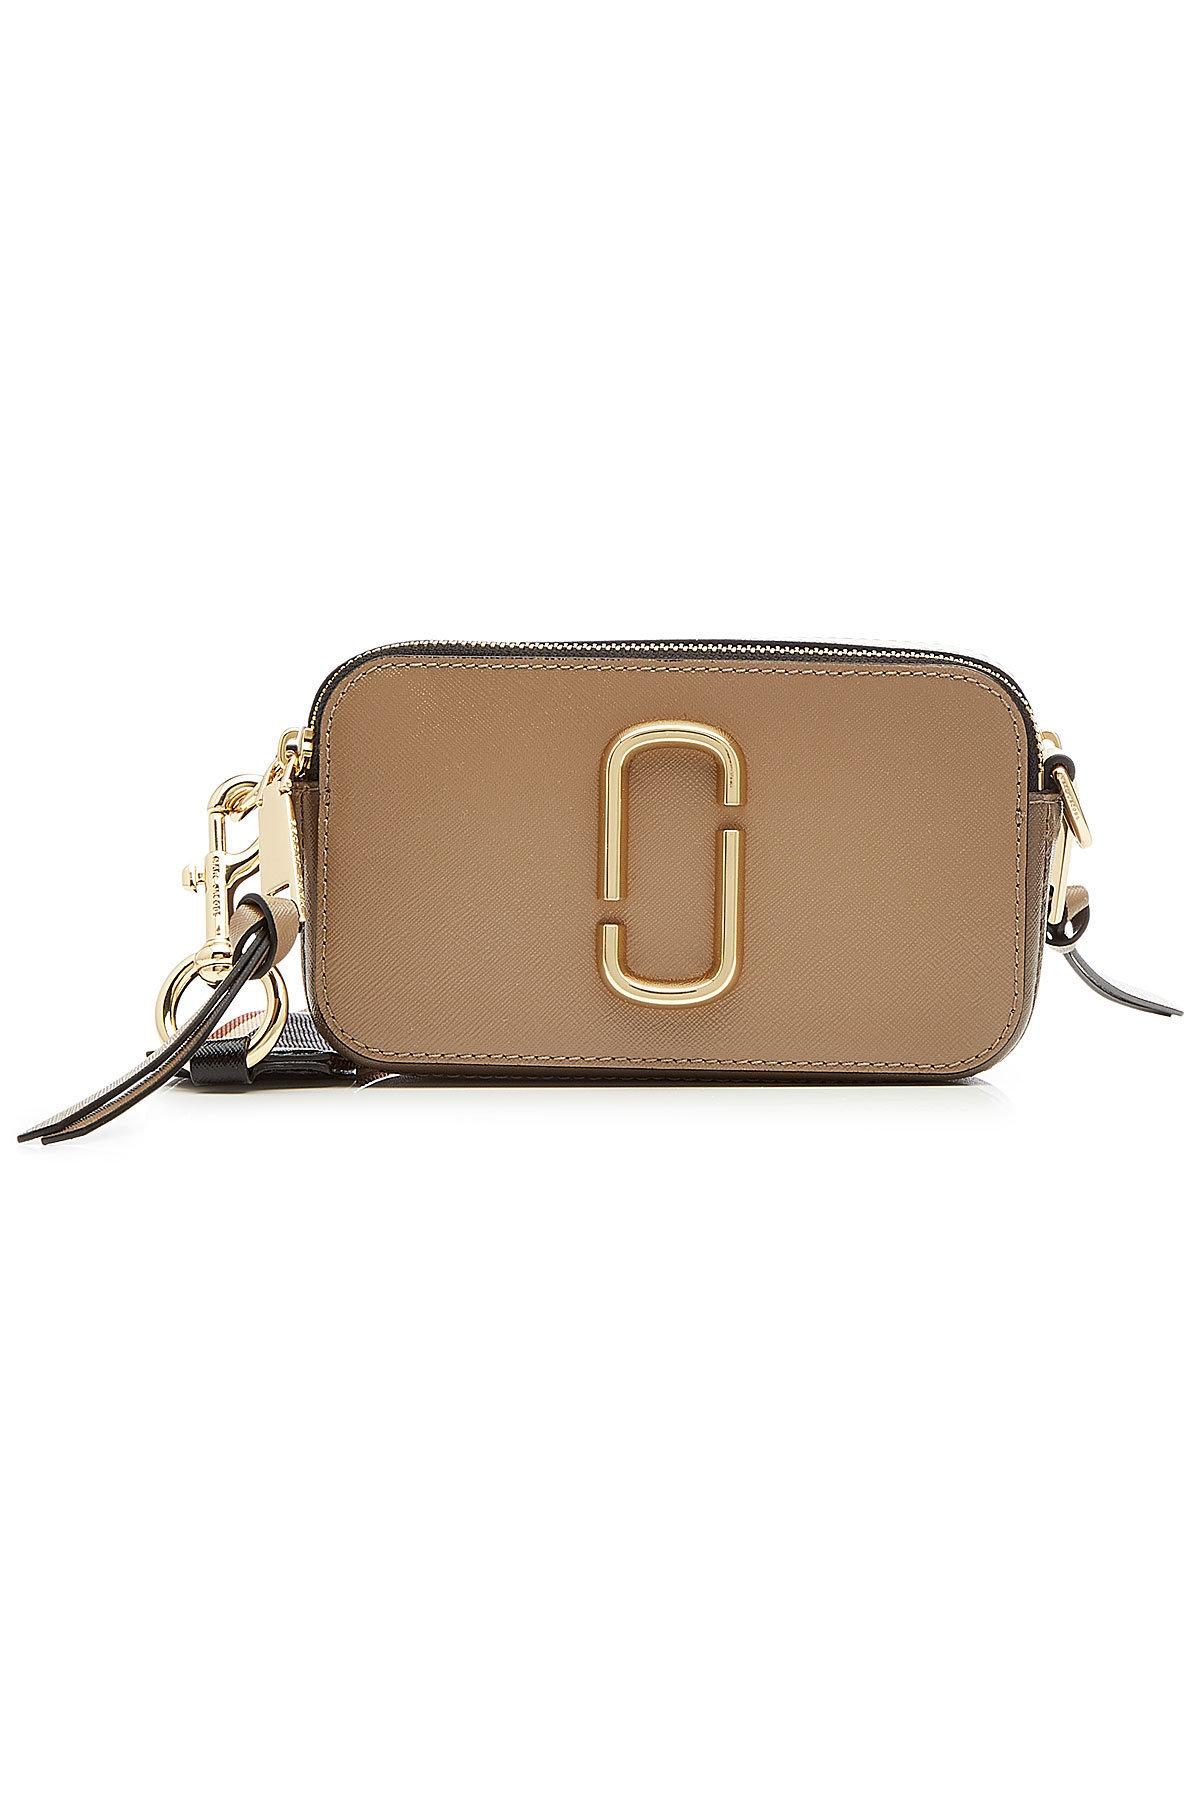 Marc Jacobs Snapshot Taupe Leather Shoulder Bag In Multicolored